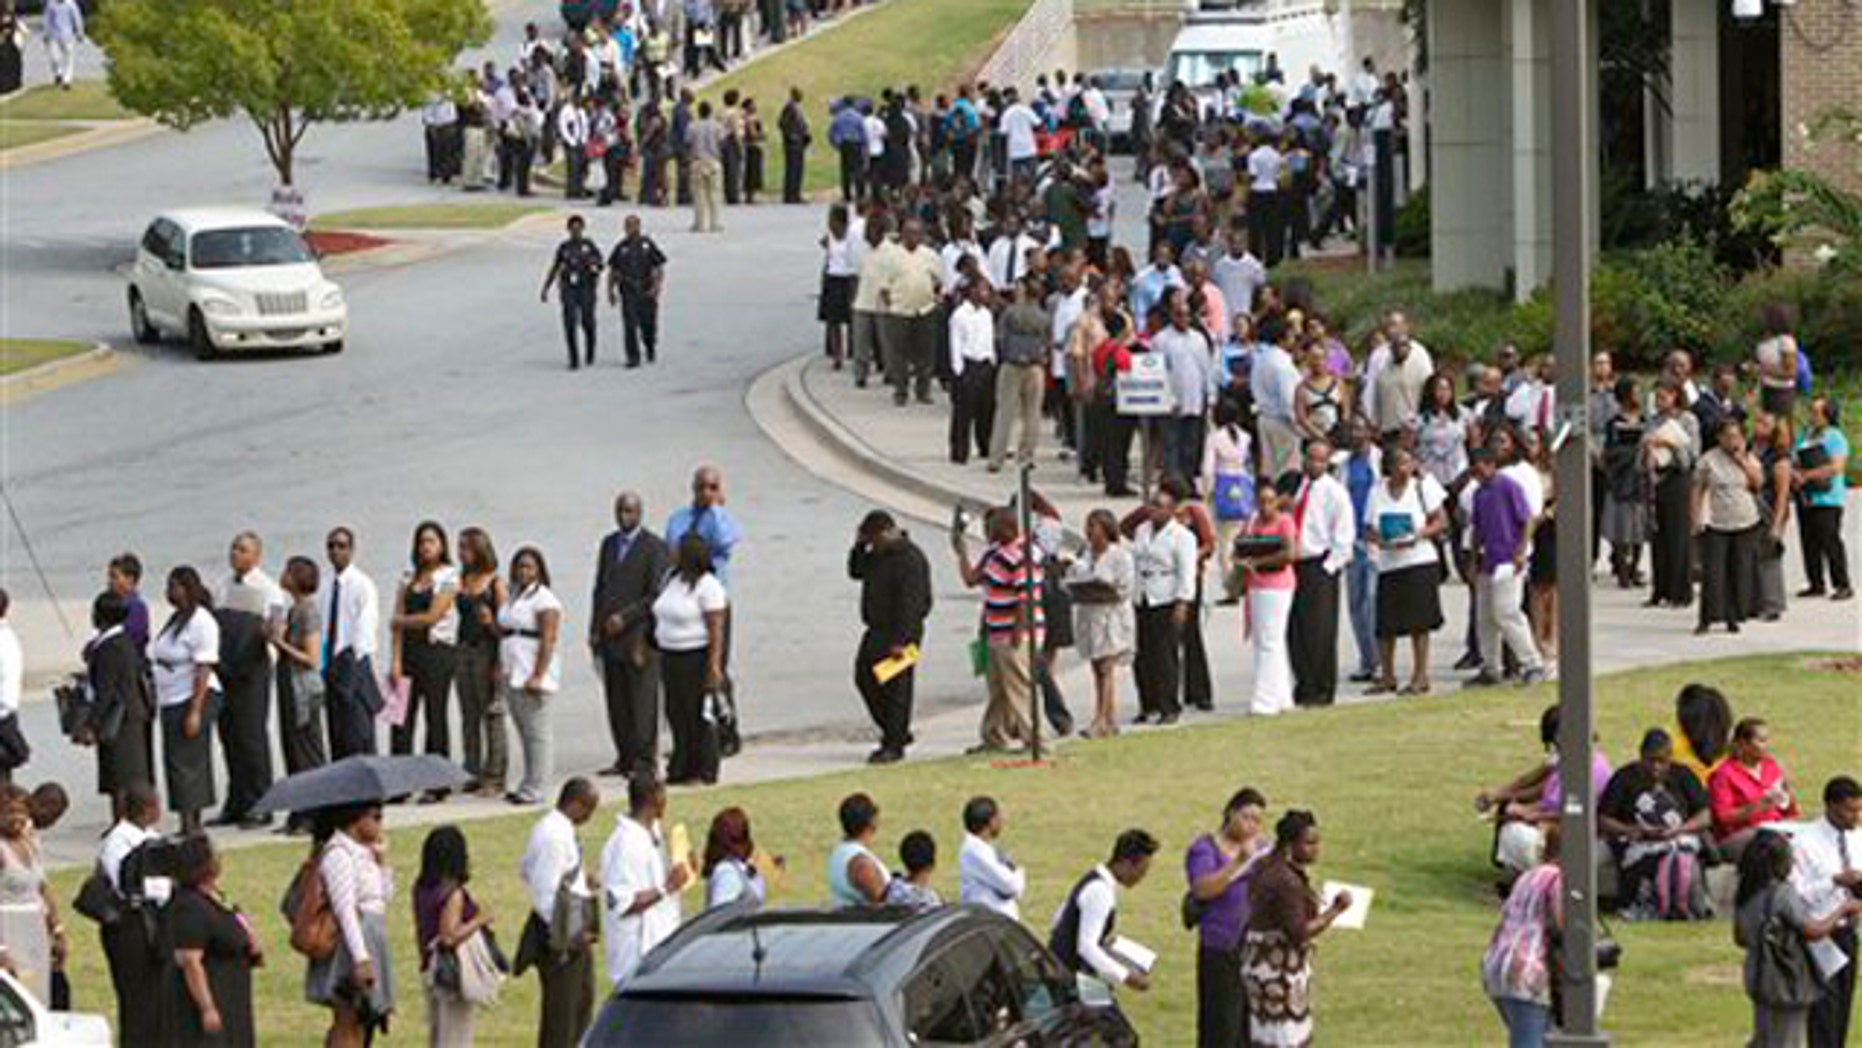 In this Aug. 18 file photo, people wait in line during a job fair in Atlanta.